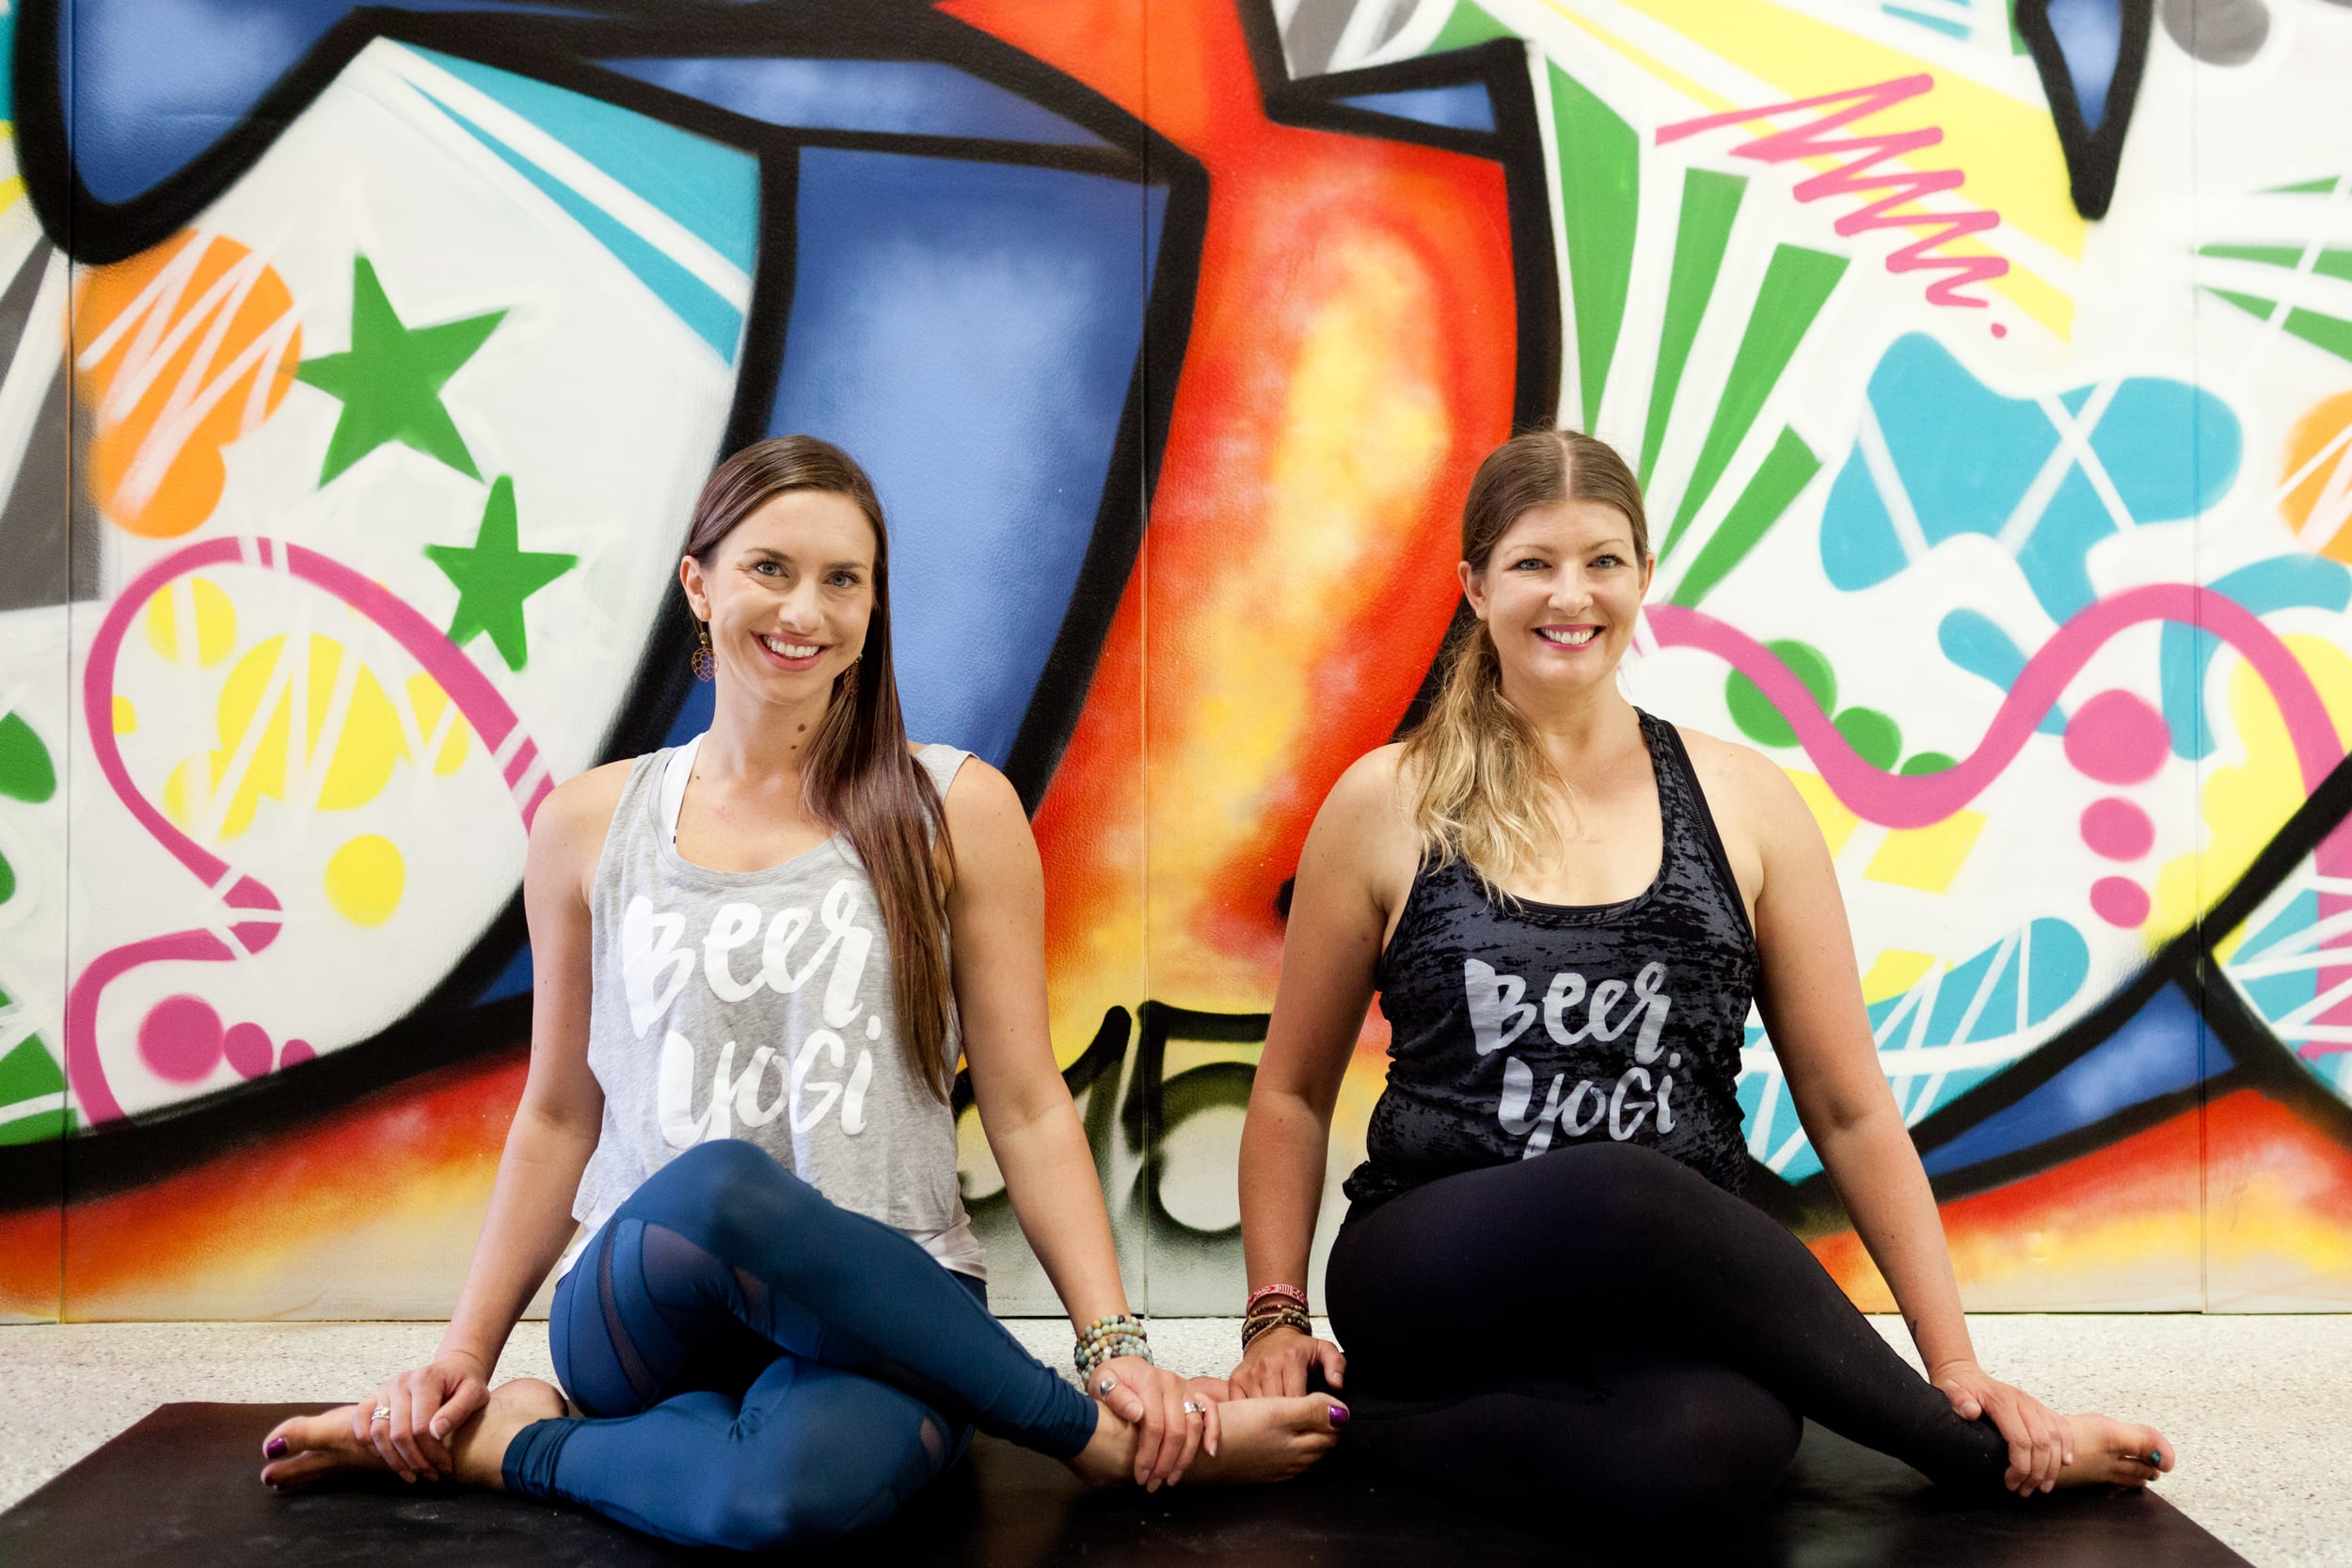 The Beer Yogis. United by Yoga and Beer. Beer Yoga gatherings, hosted by Mikki Trowbridge and Melissa Klimo-Major,across the United States.